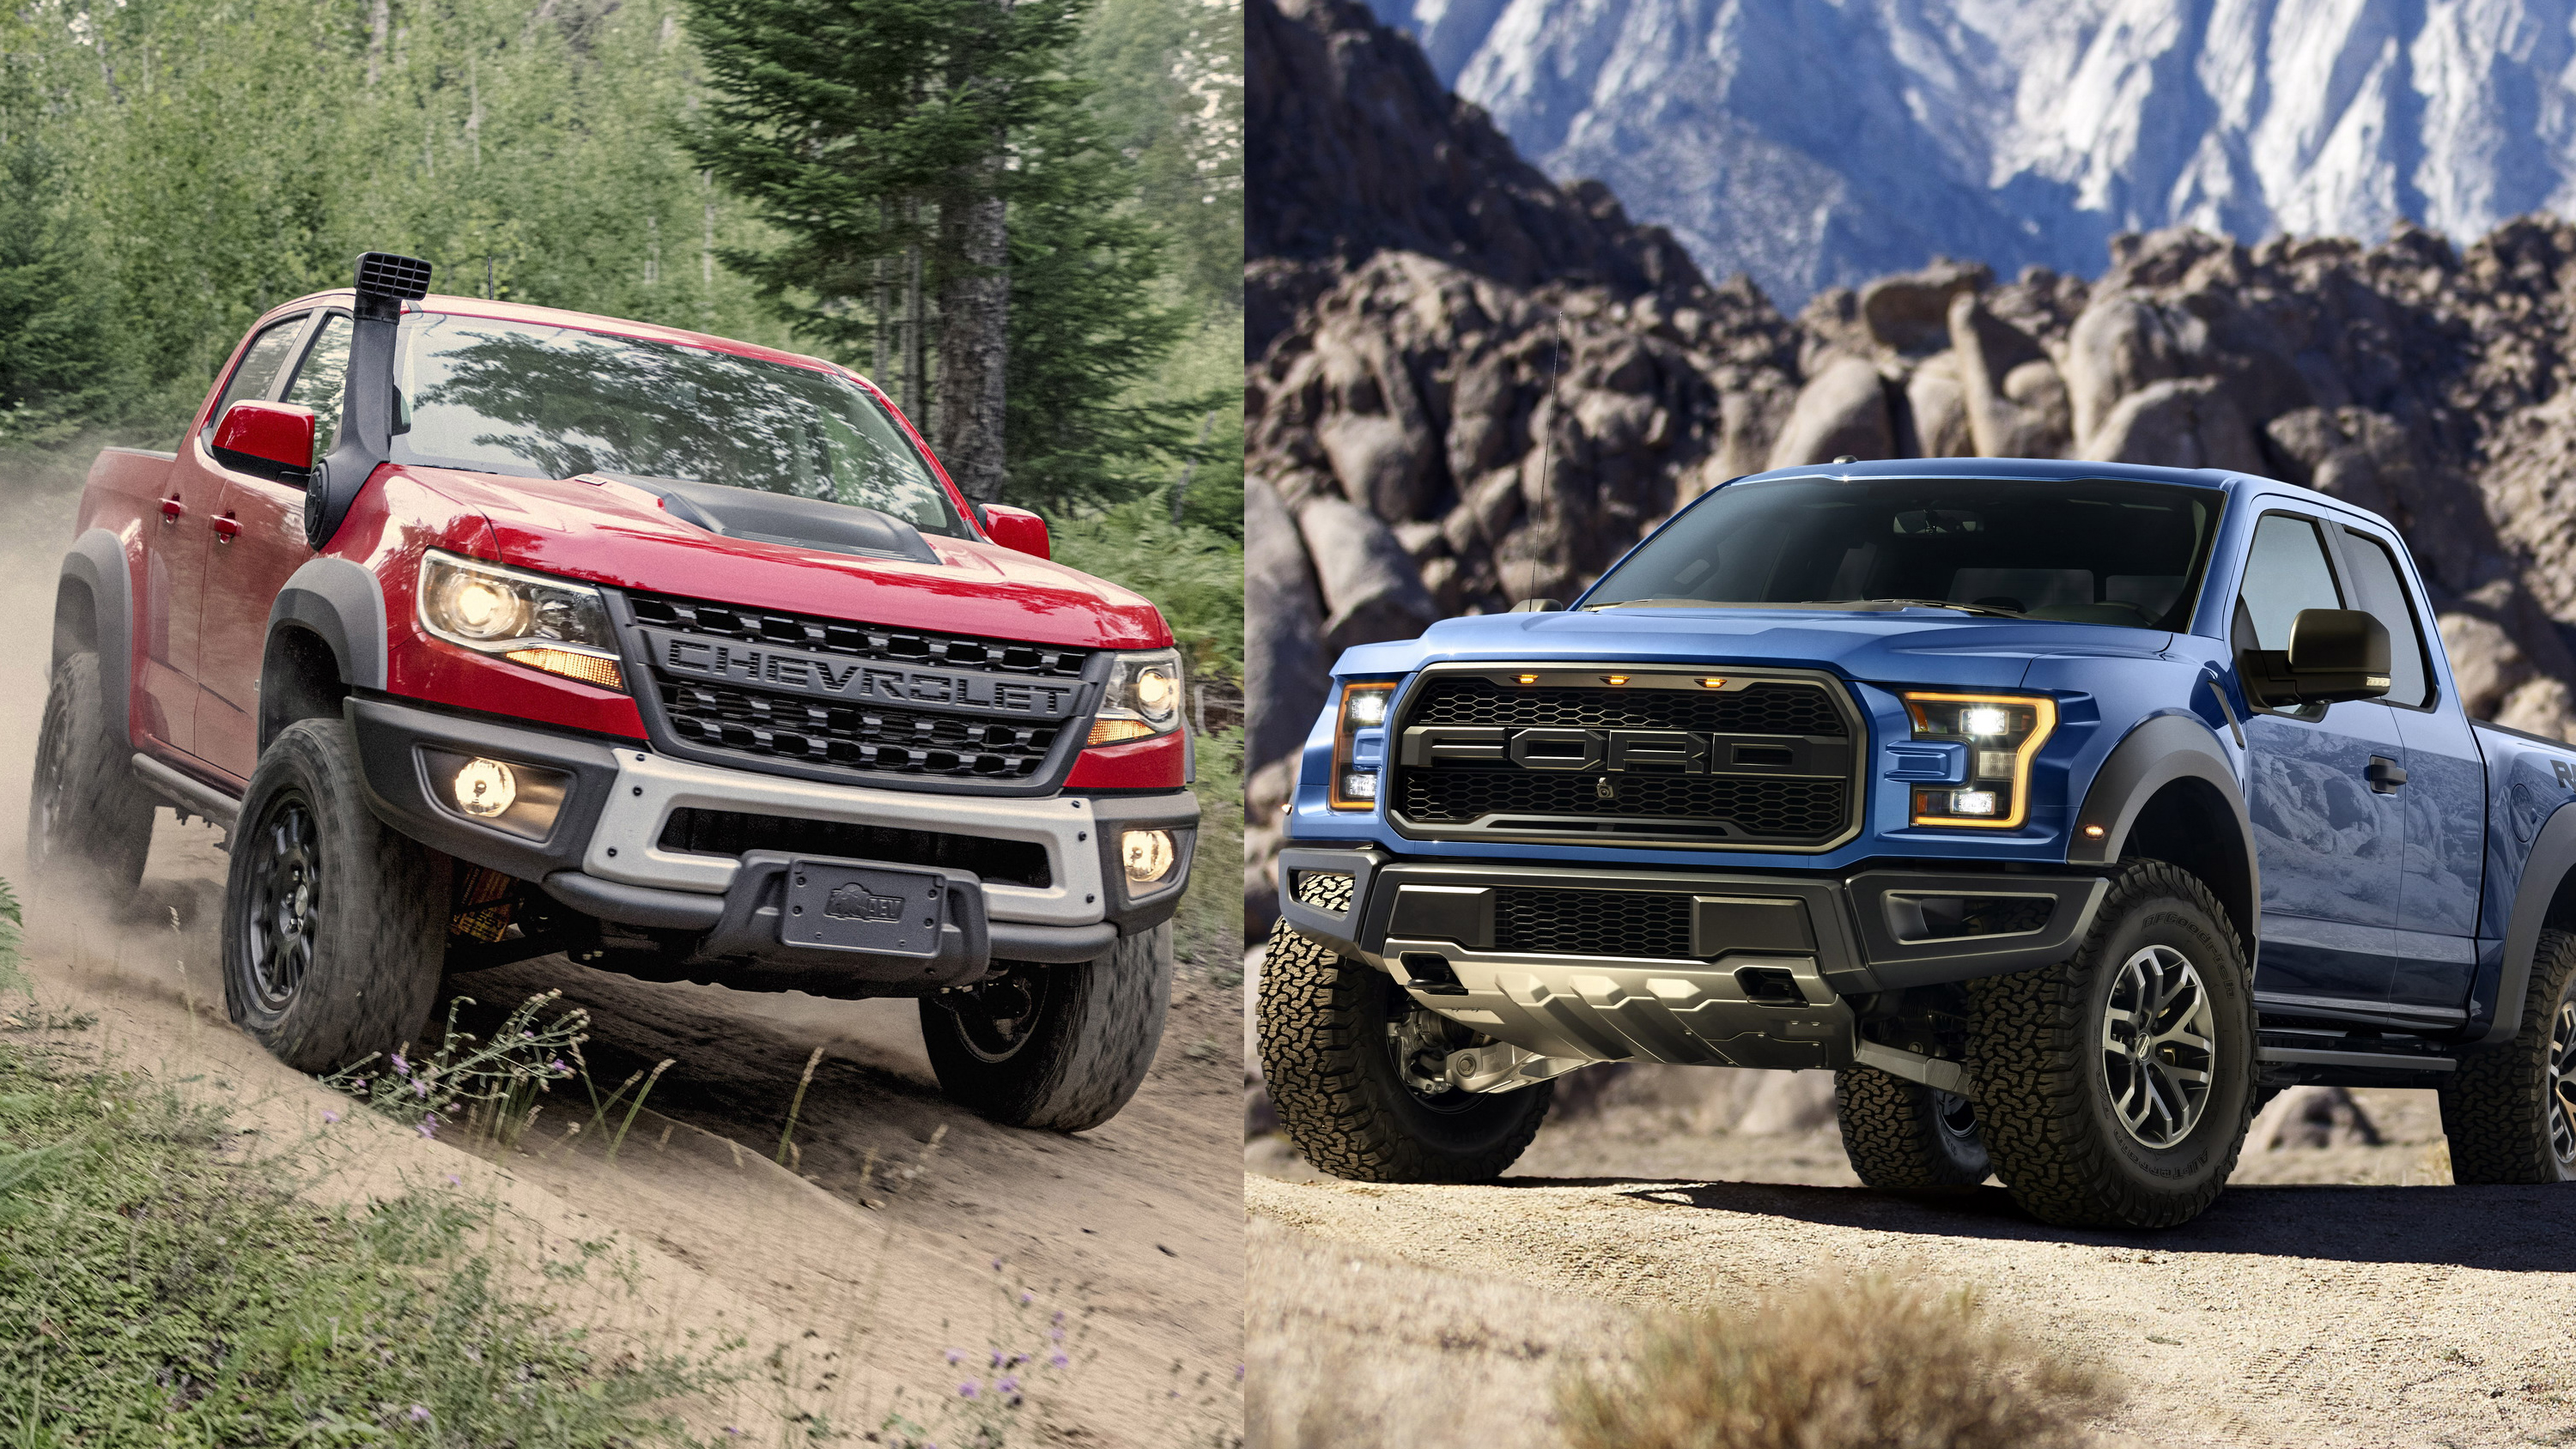 Chevy Colorado ZR2 Bison Vs Ford F-150 Raptor Pictures ...